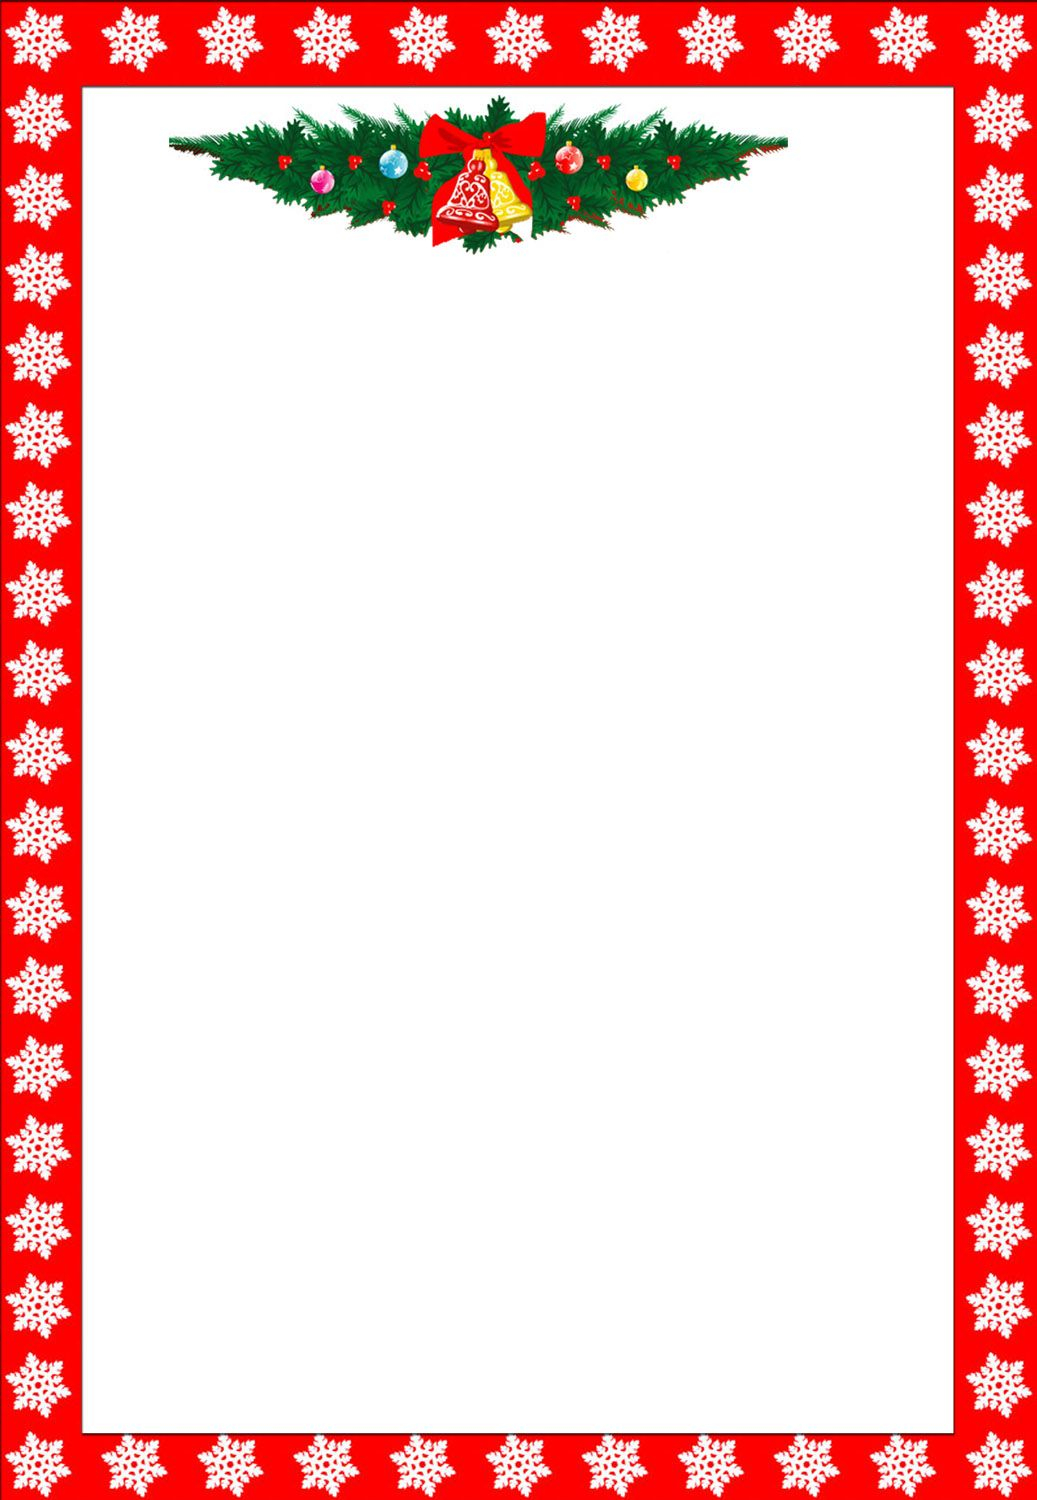 christmas letter border template Collection-Christmas Clip Art Borders 12-r